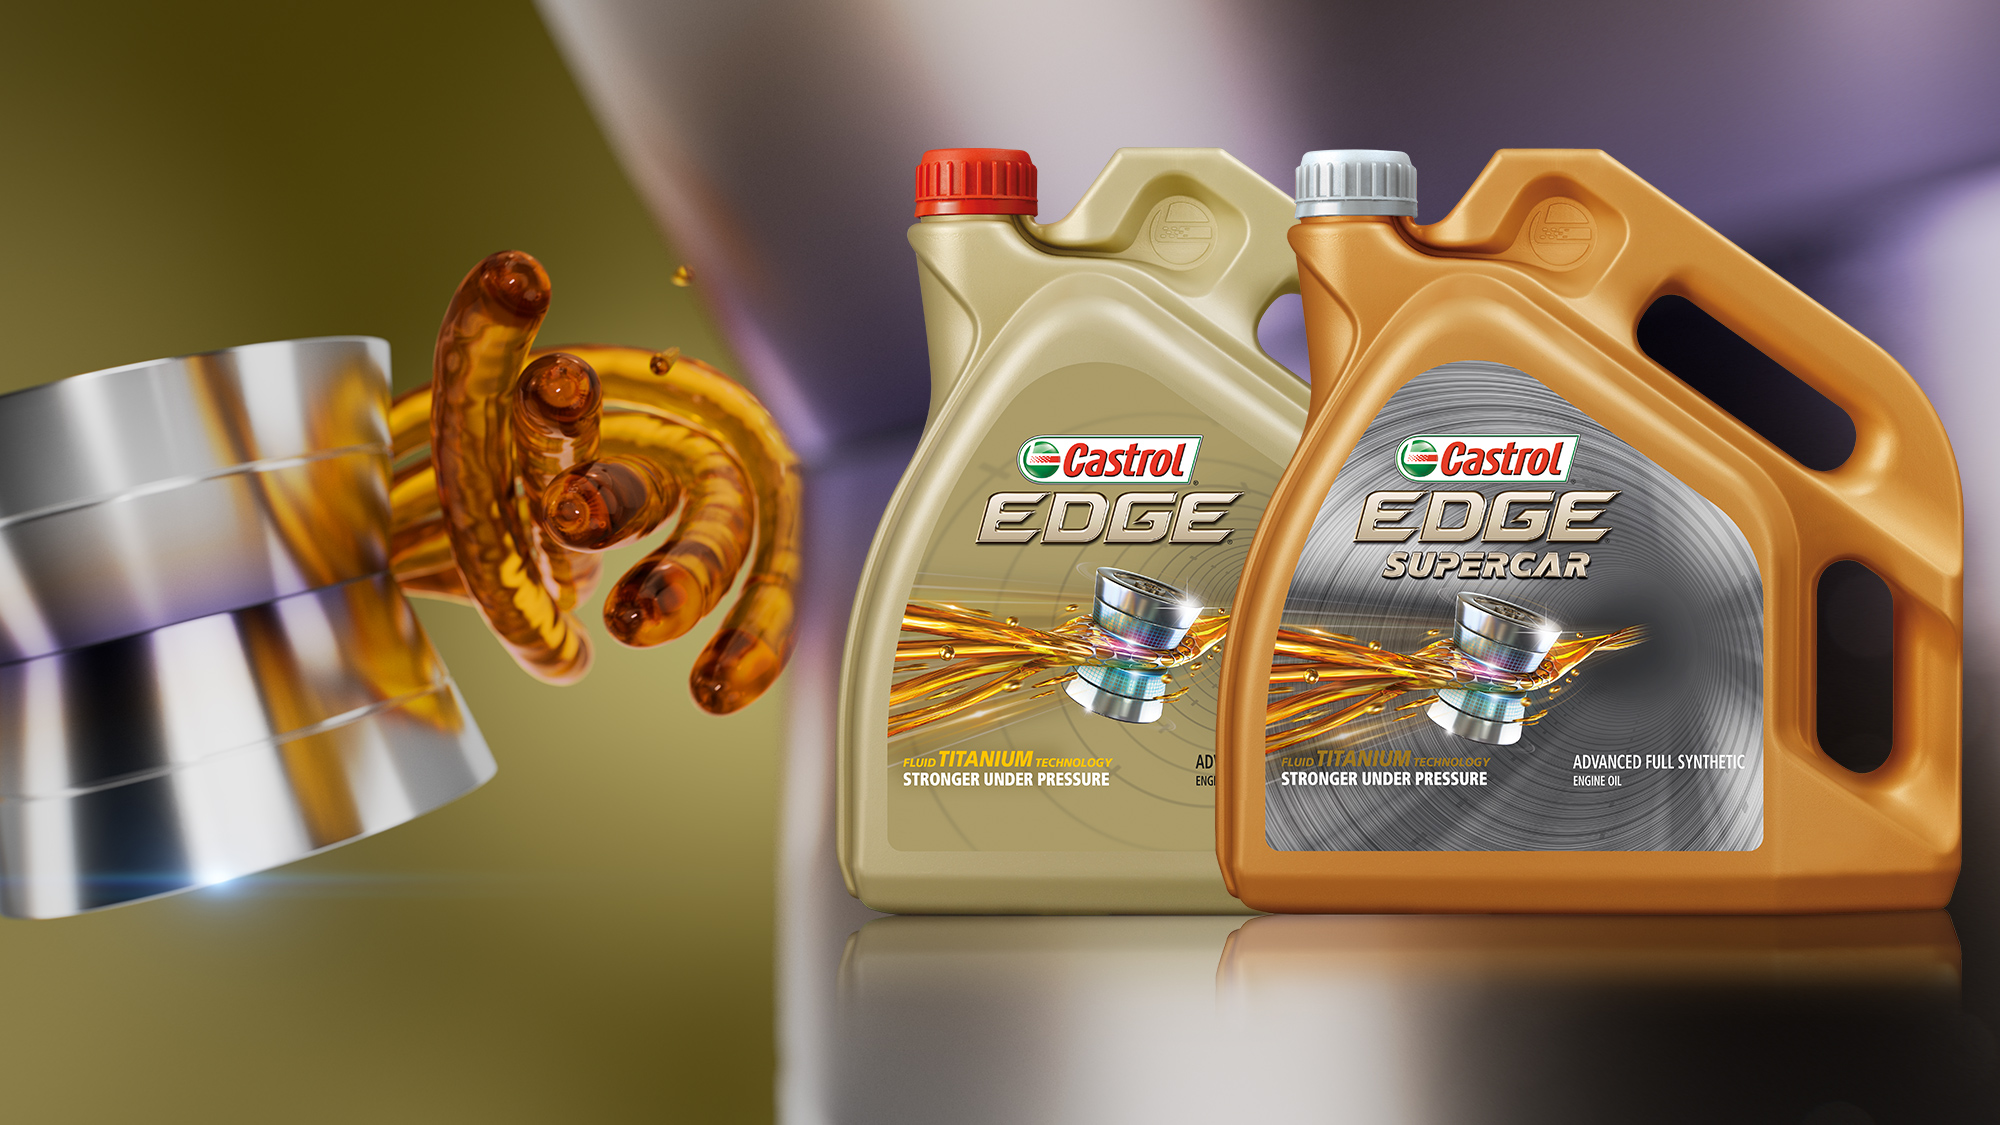 Castrol EDGE SUPERCAR PRODUCTS